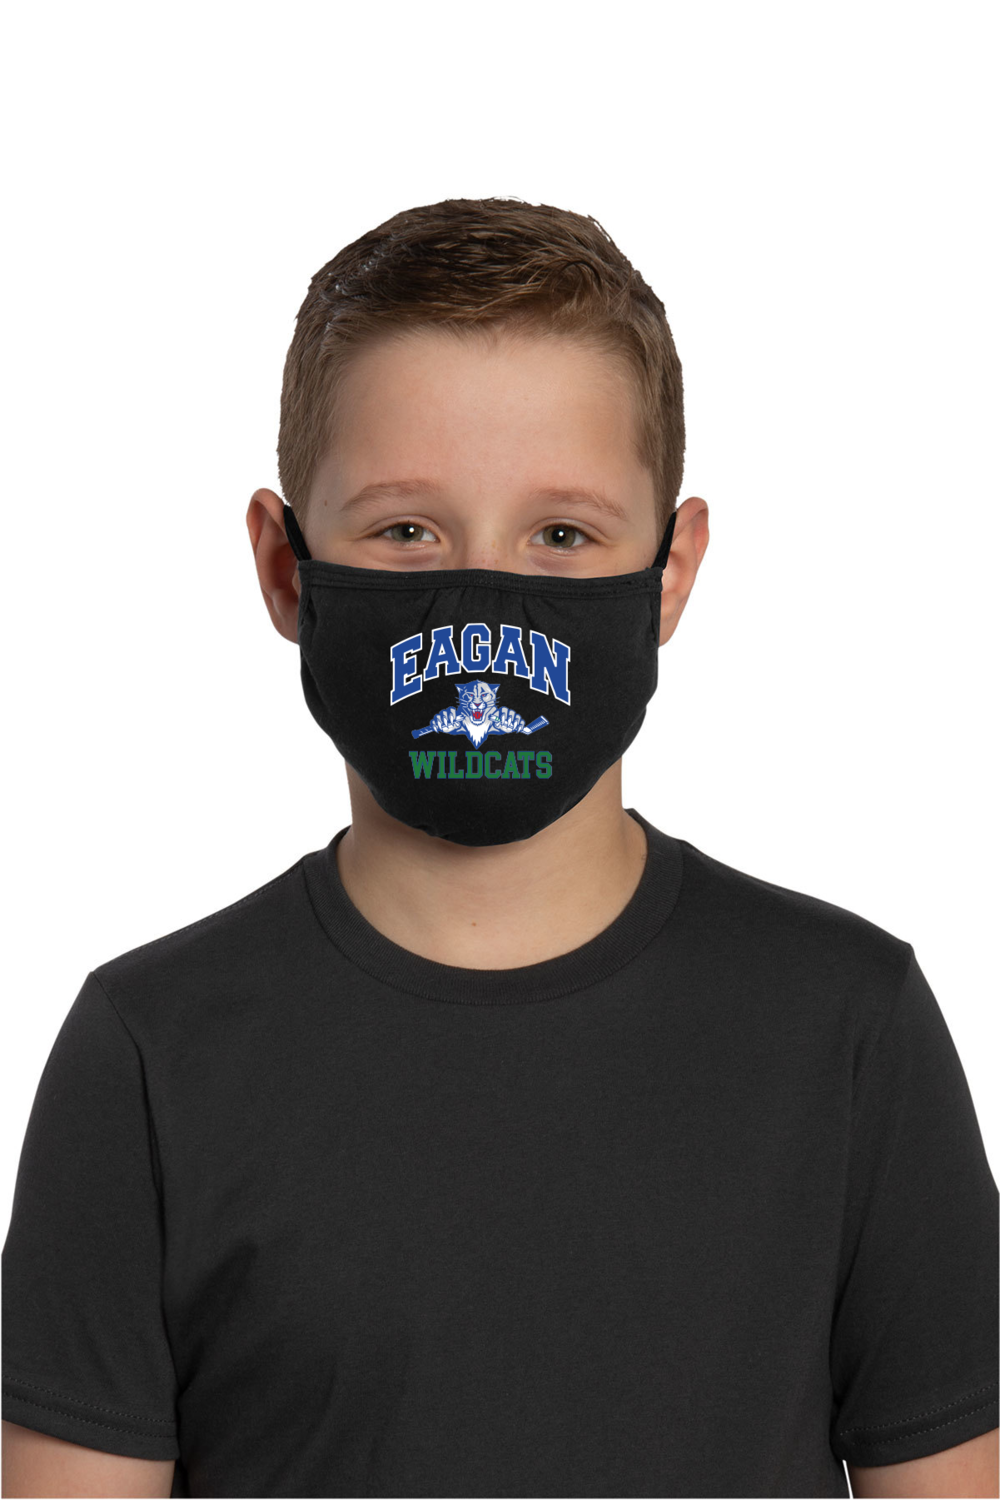 Eagan Wildcats Hockey Mask - Youth